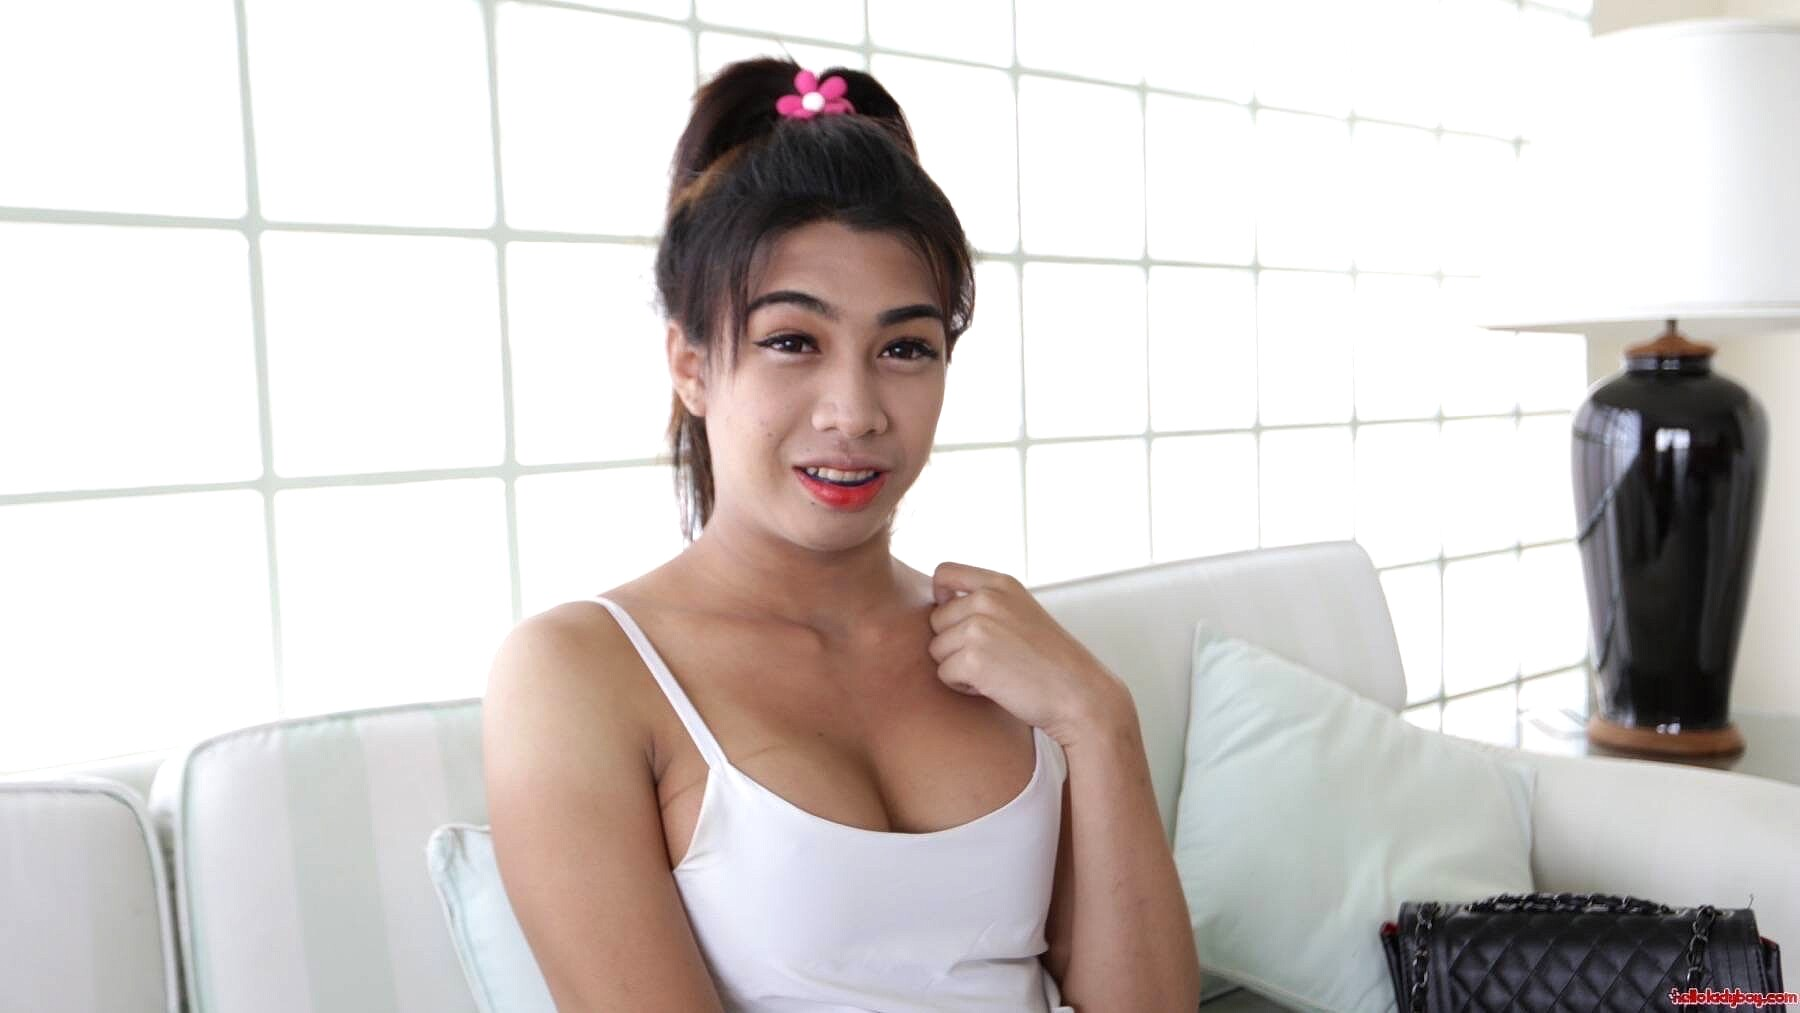 Teen Ladyboy and Young Asian Shemale Porn